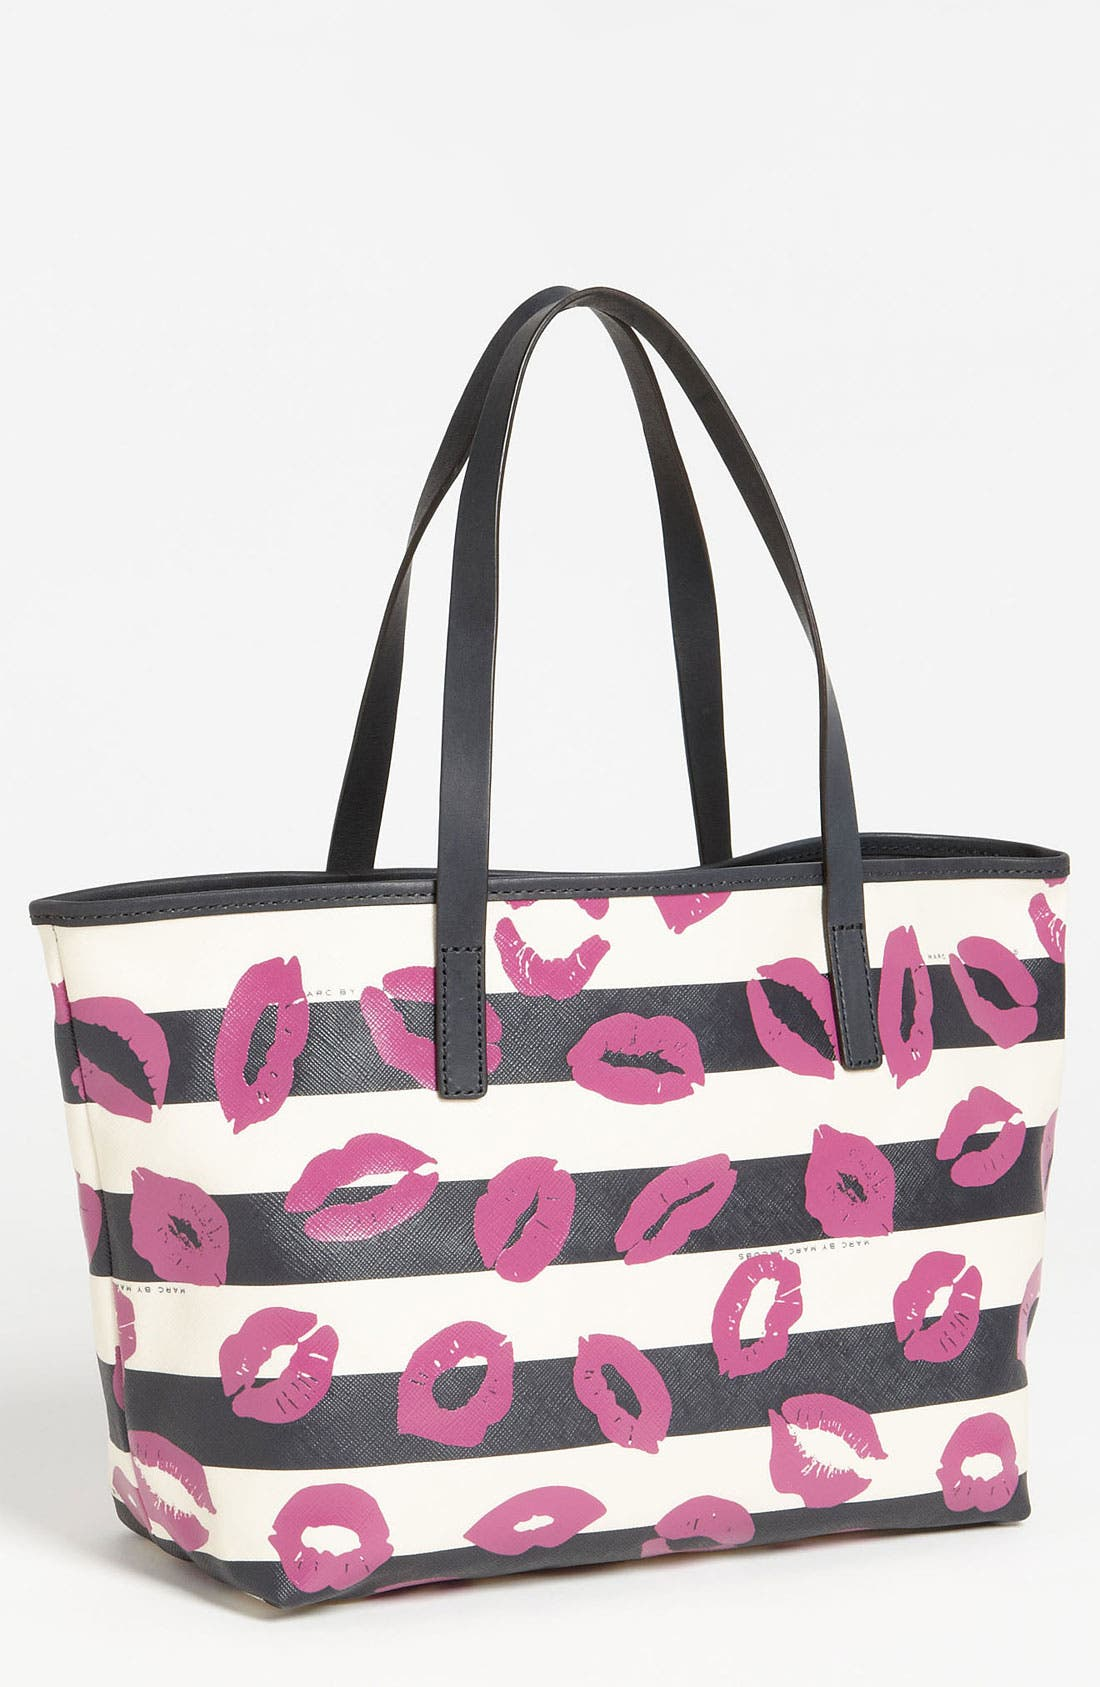 Main Image - MARC BY MARC JACOBS 'Eazy - Small' Tote